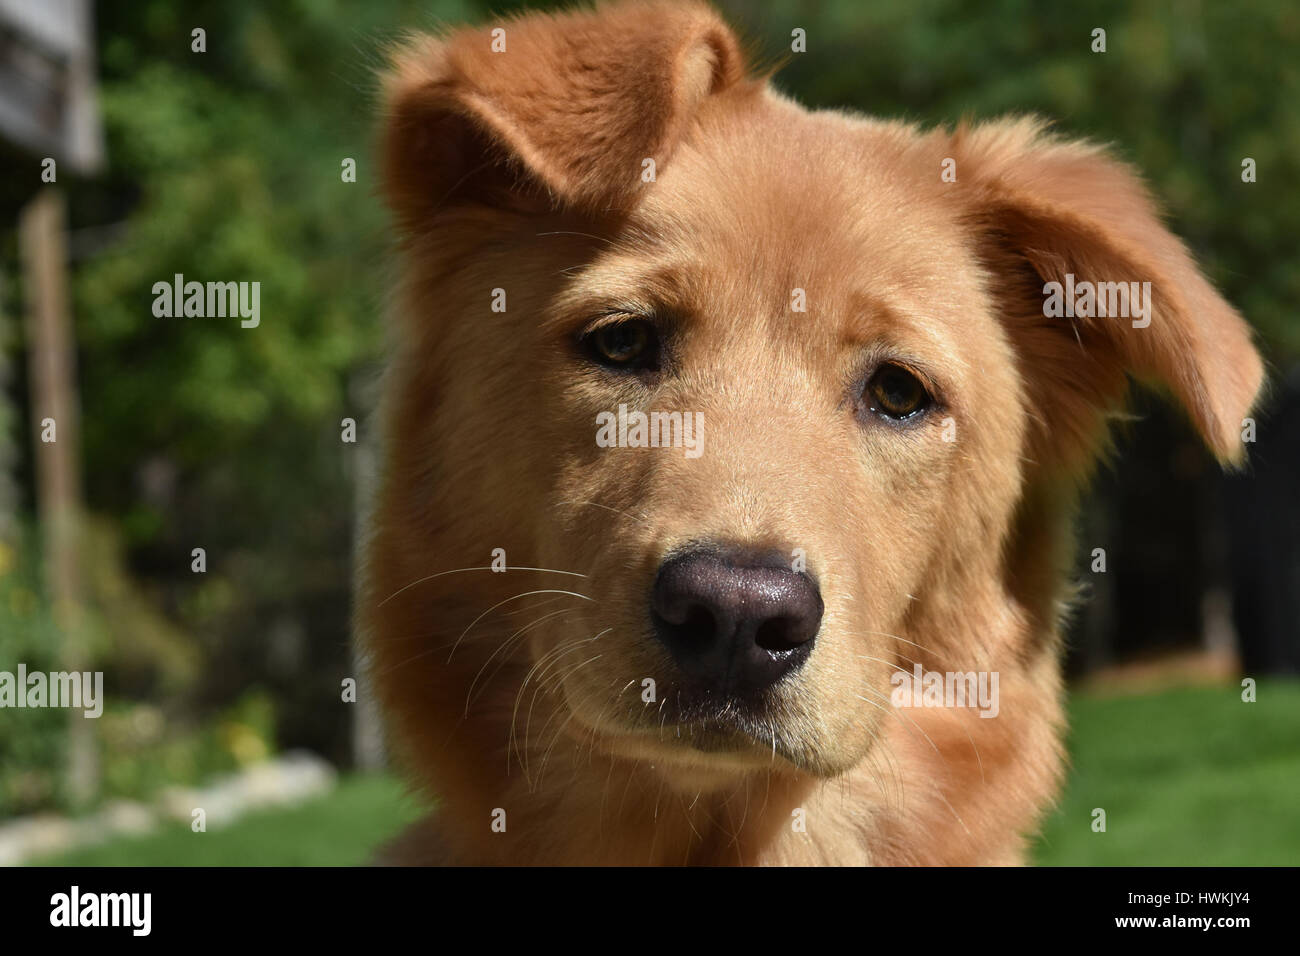 Very cute toller puppy with his head cocked. - Stock Image